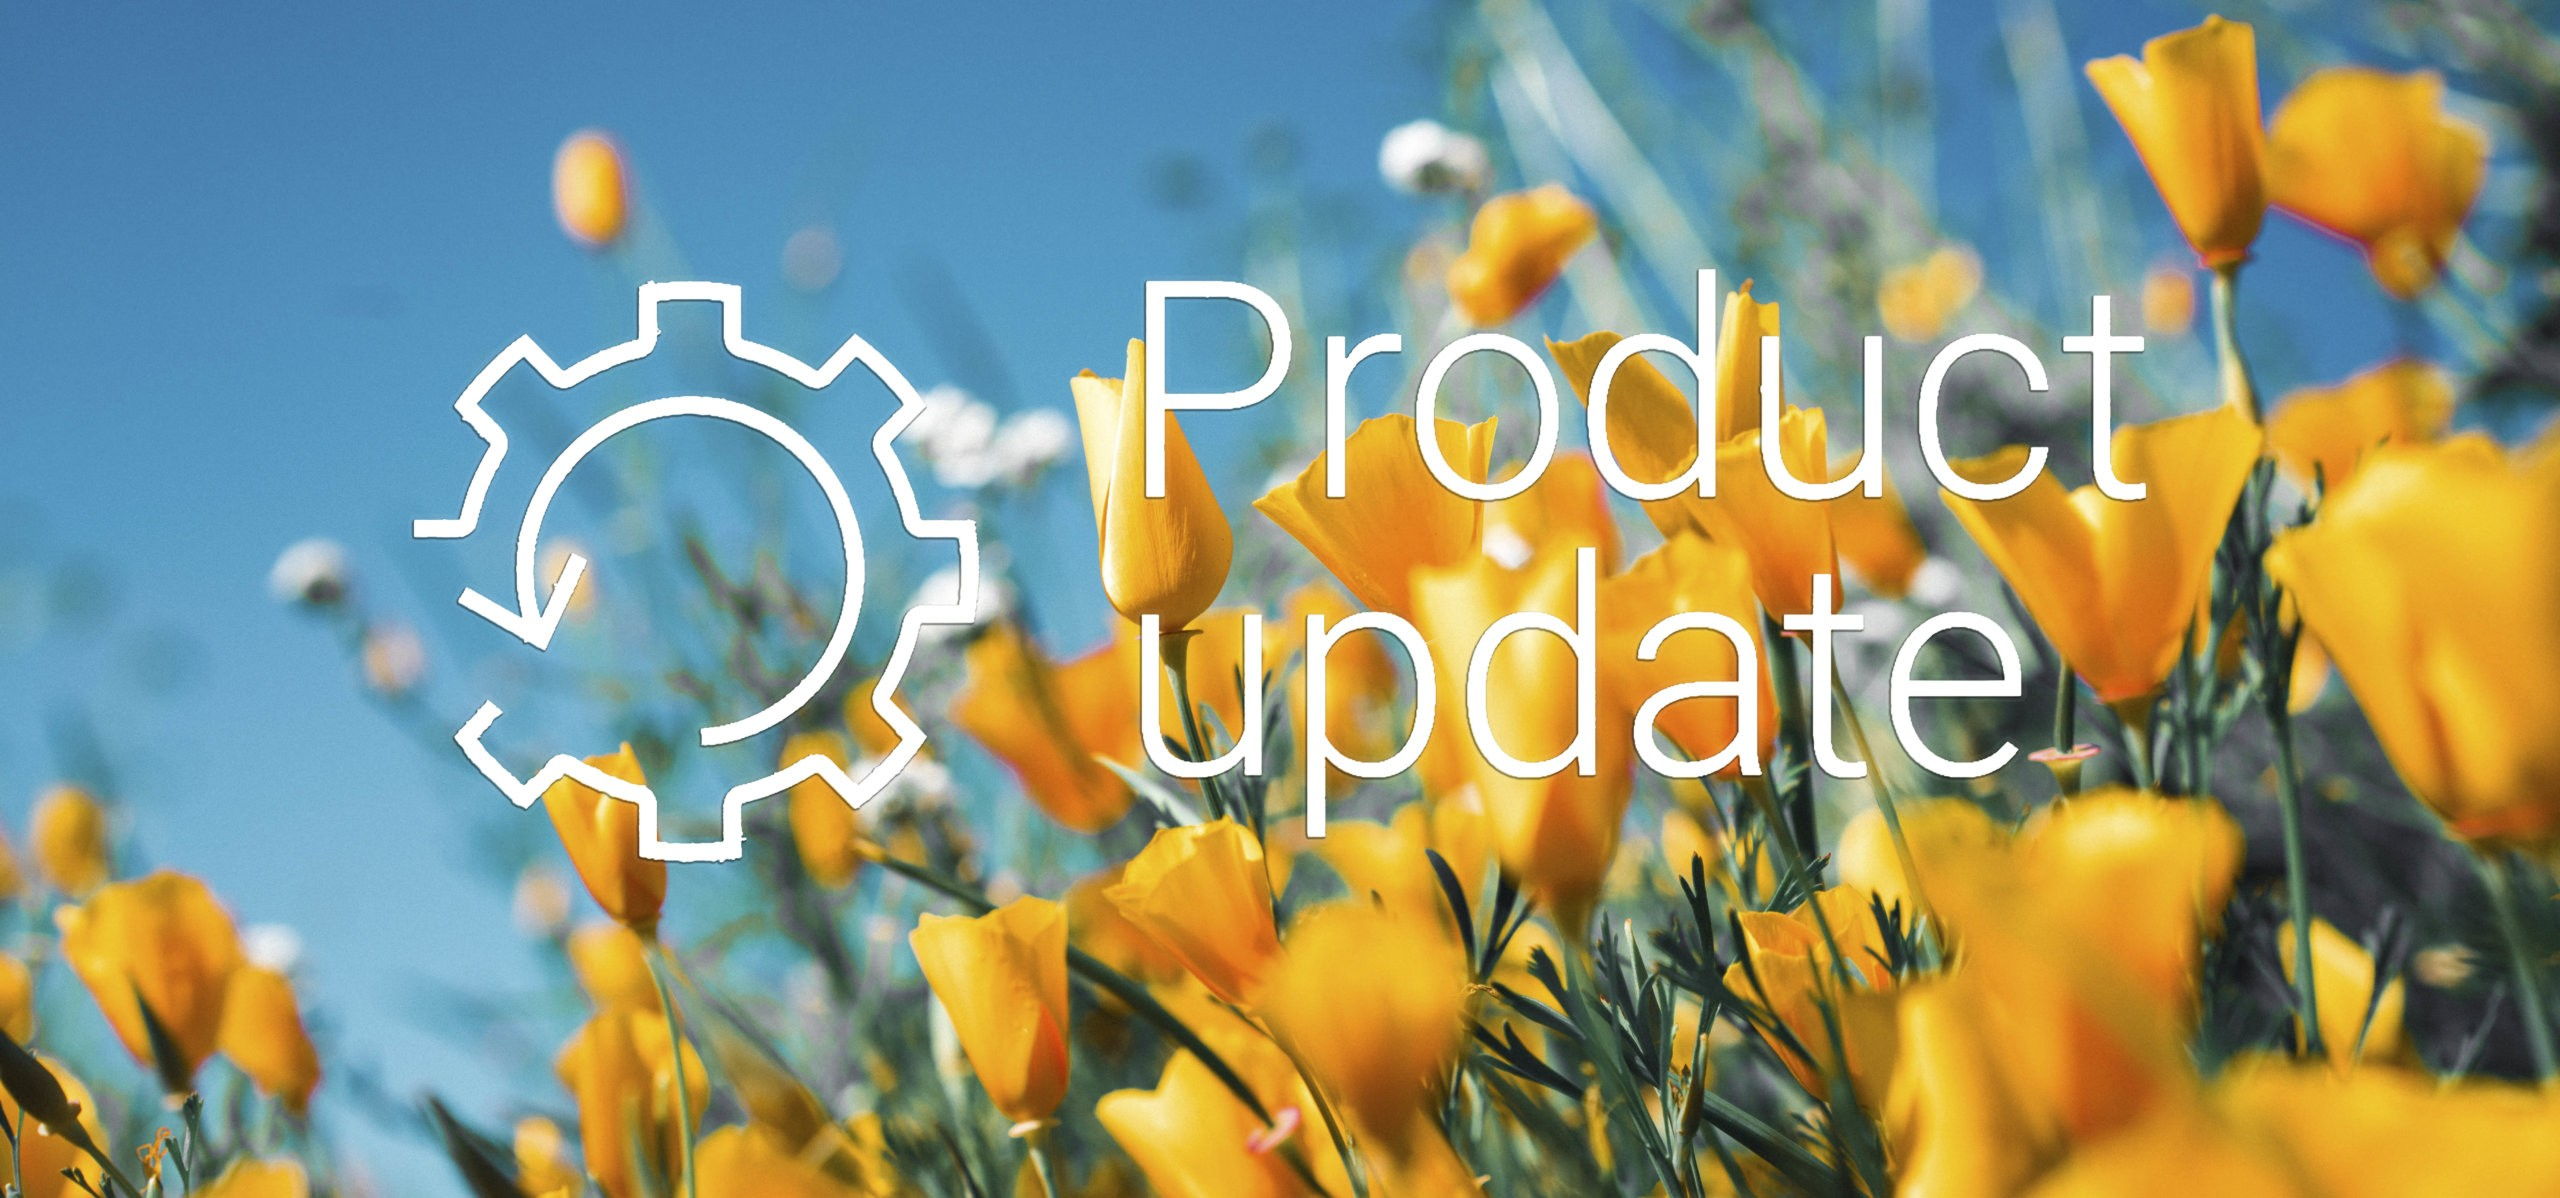 Product update april 2020